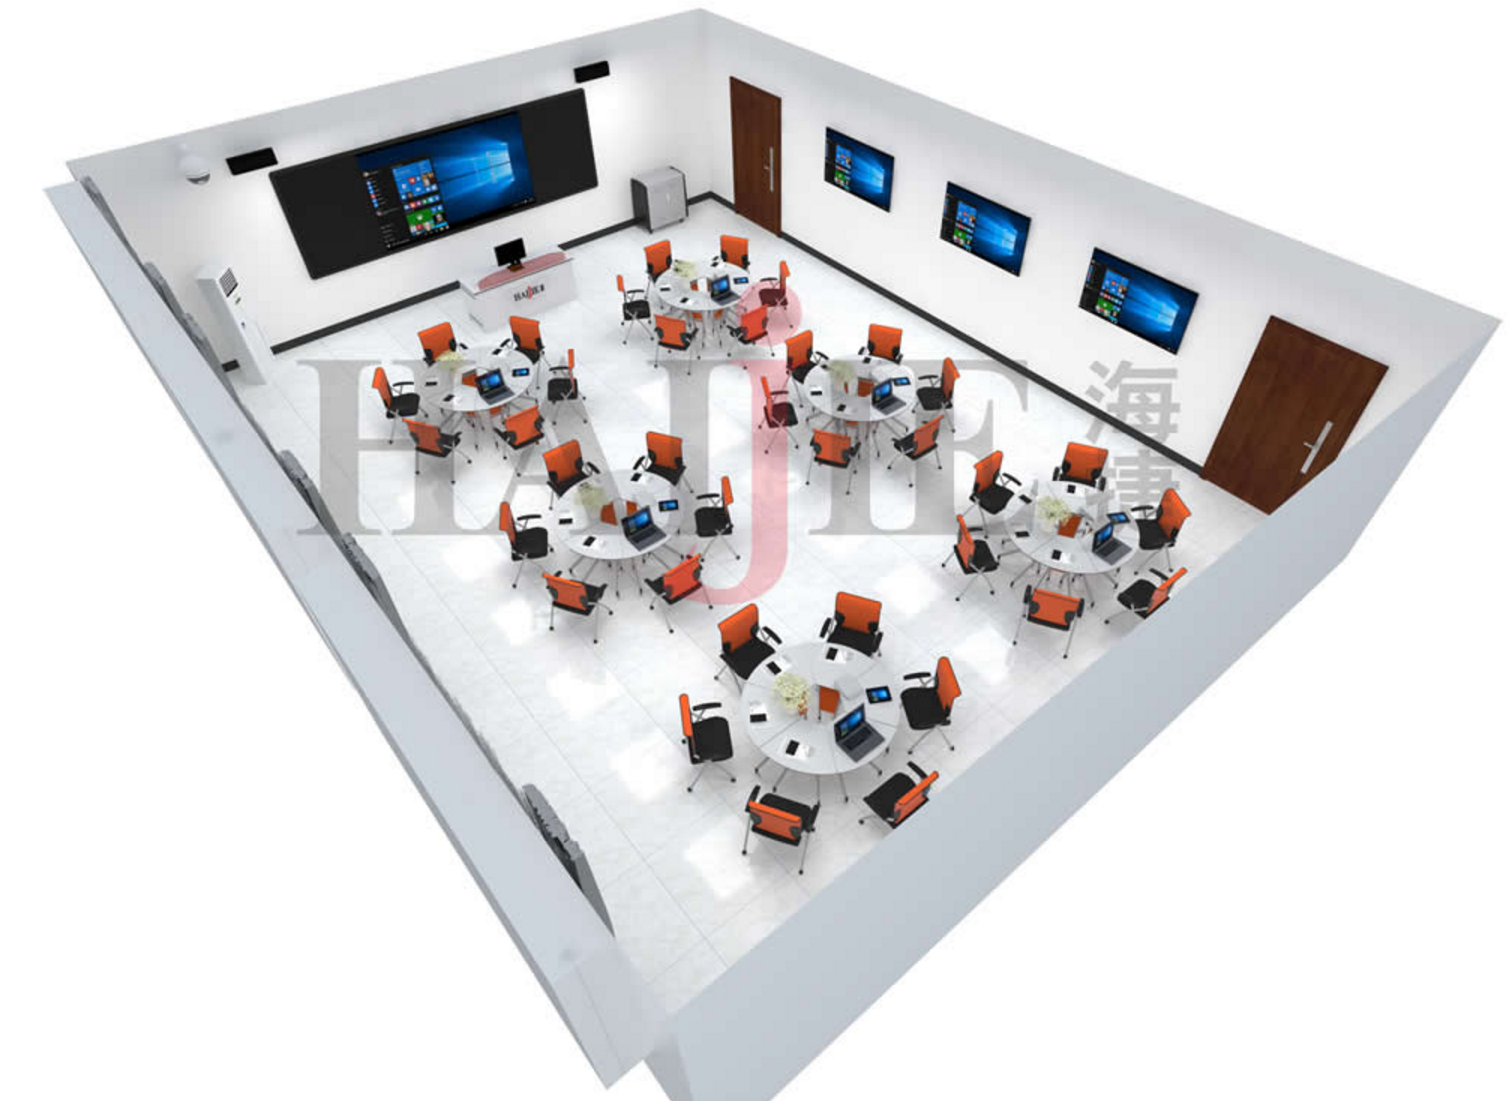 Collaborative Table---make the classroom more exciting